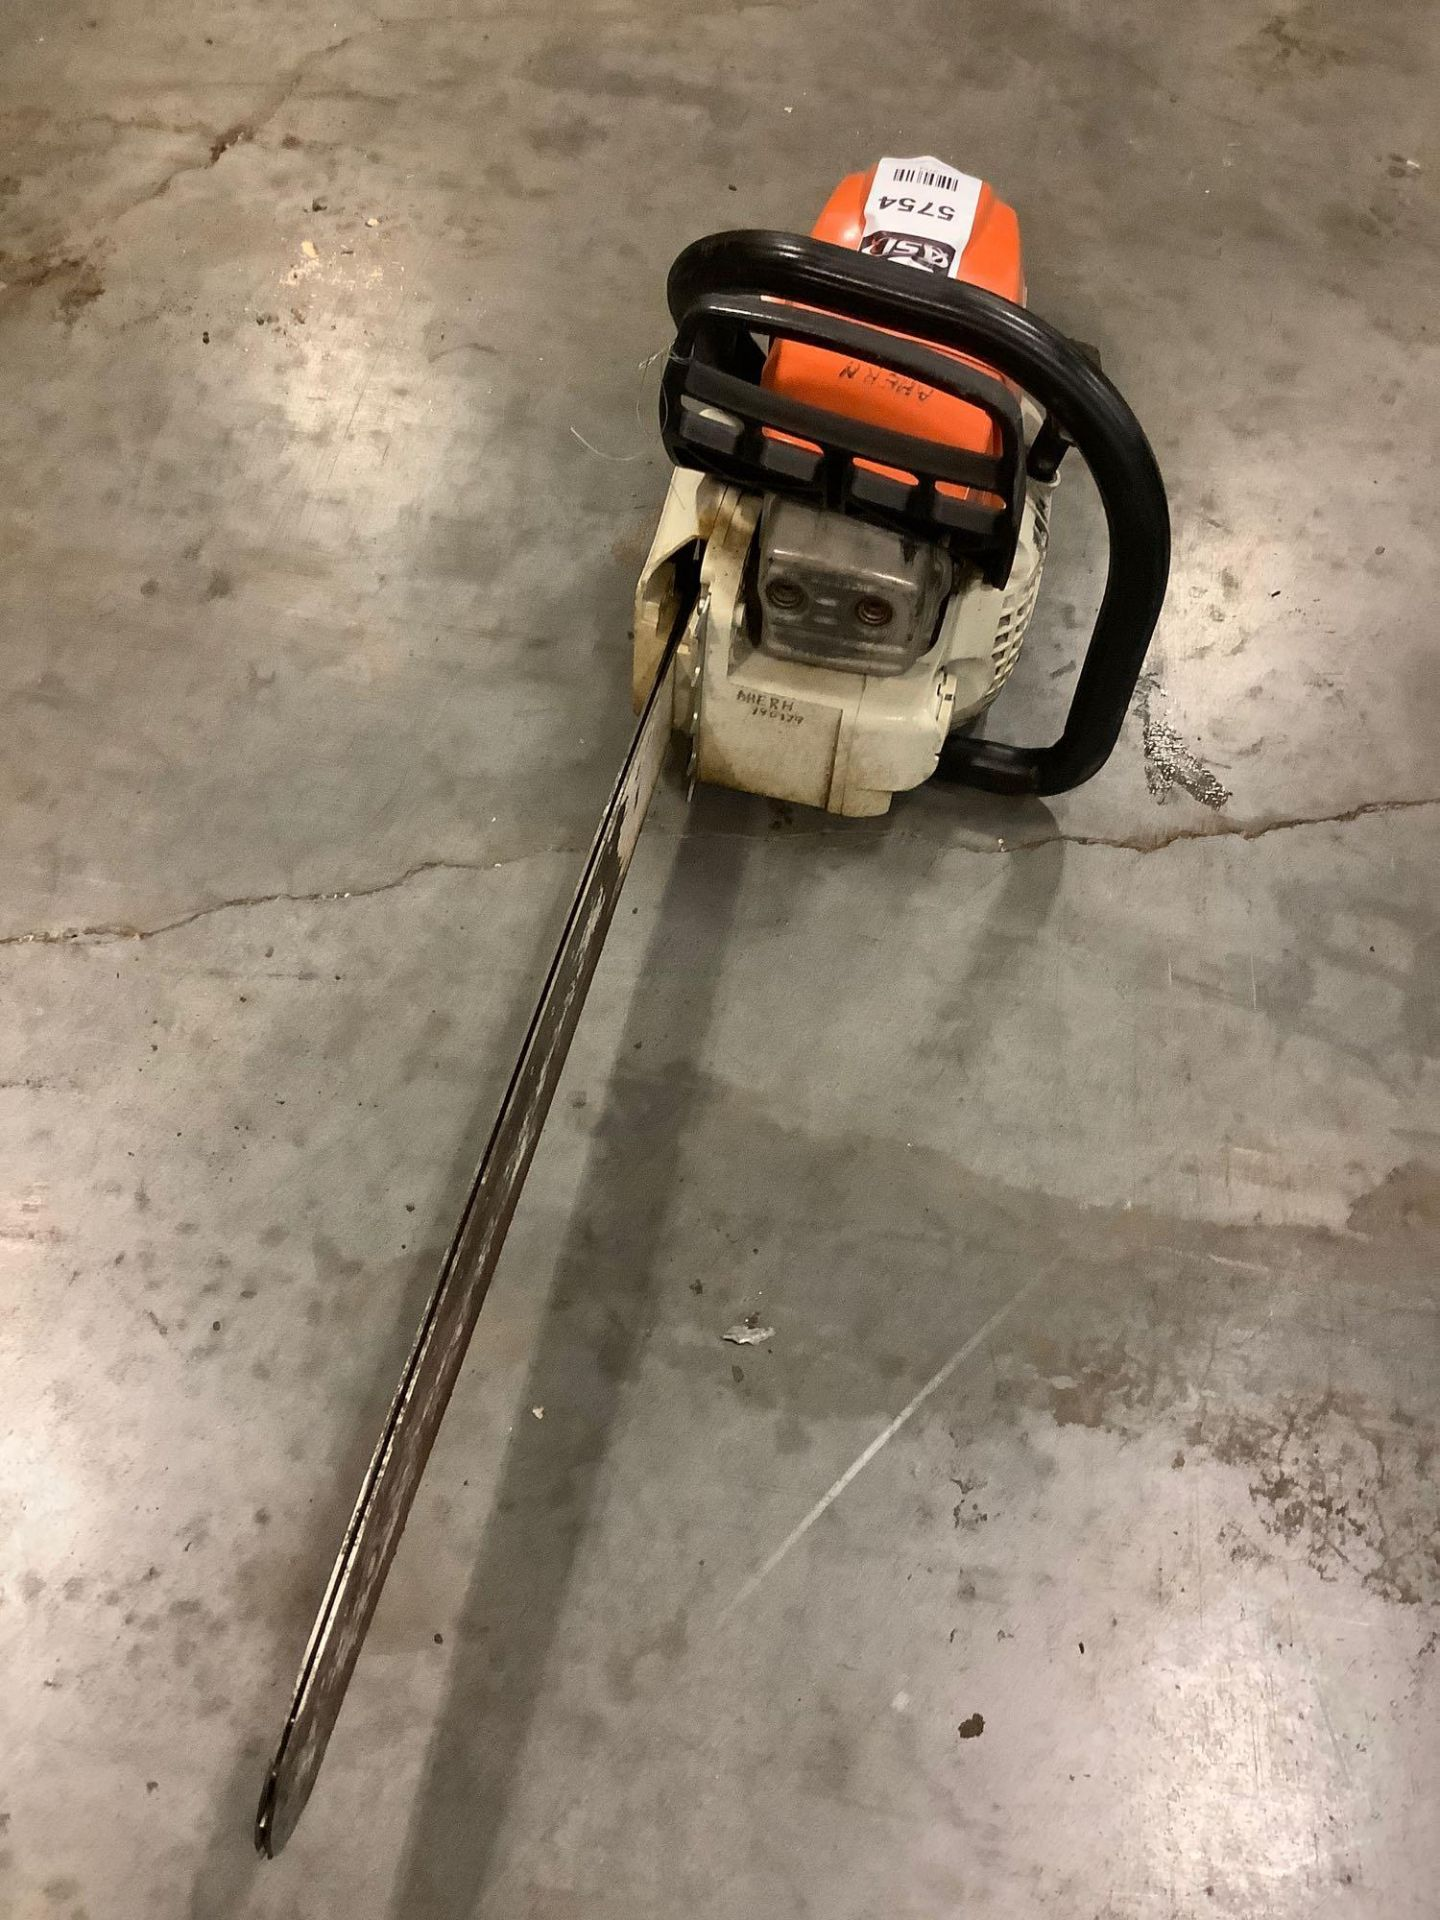 2017 STIHL CHAIN SAW MODEL MS291 MISSING CHAIN & HANDLE IS BROKEN - Image 6 of 6